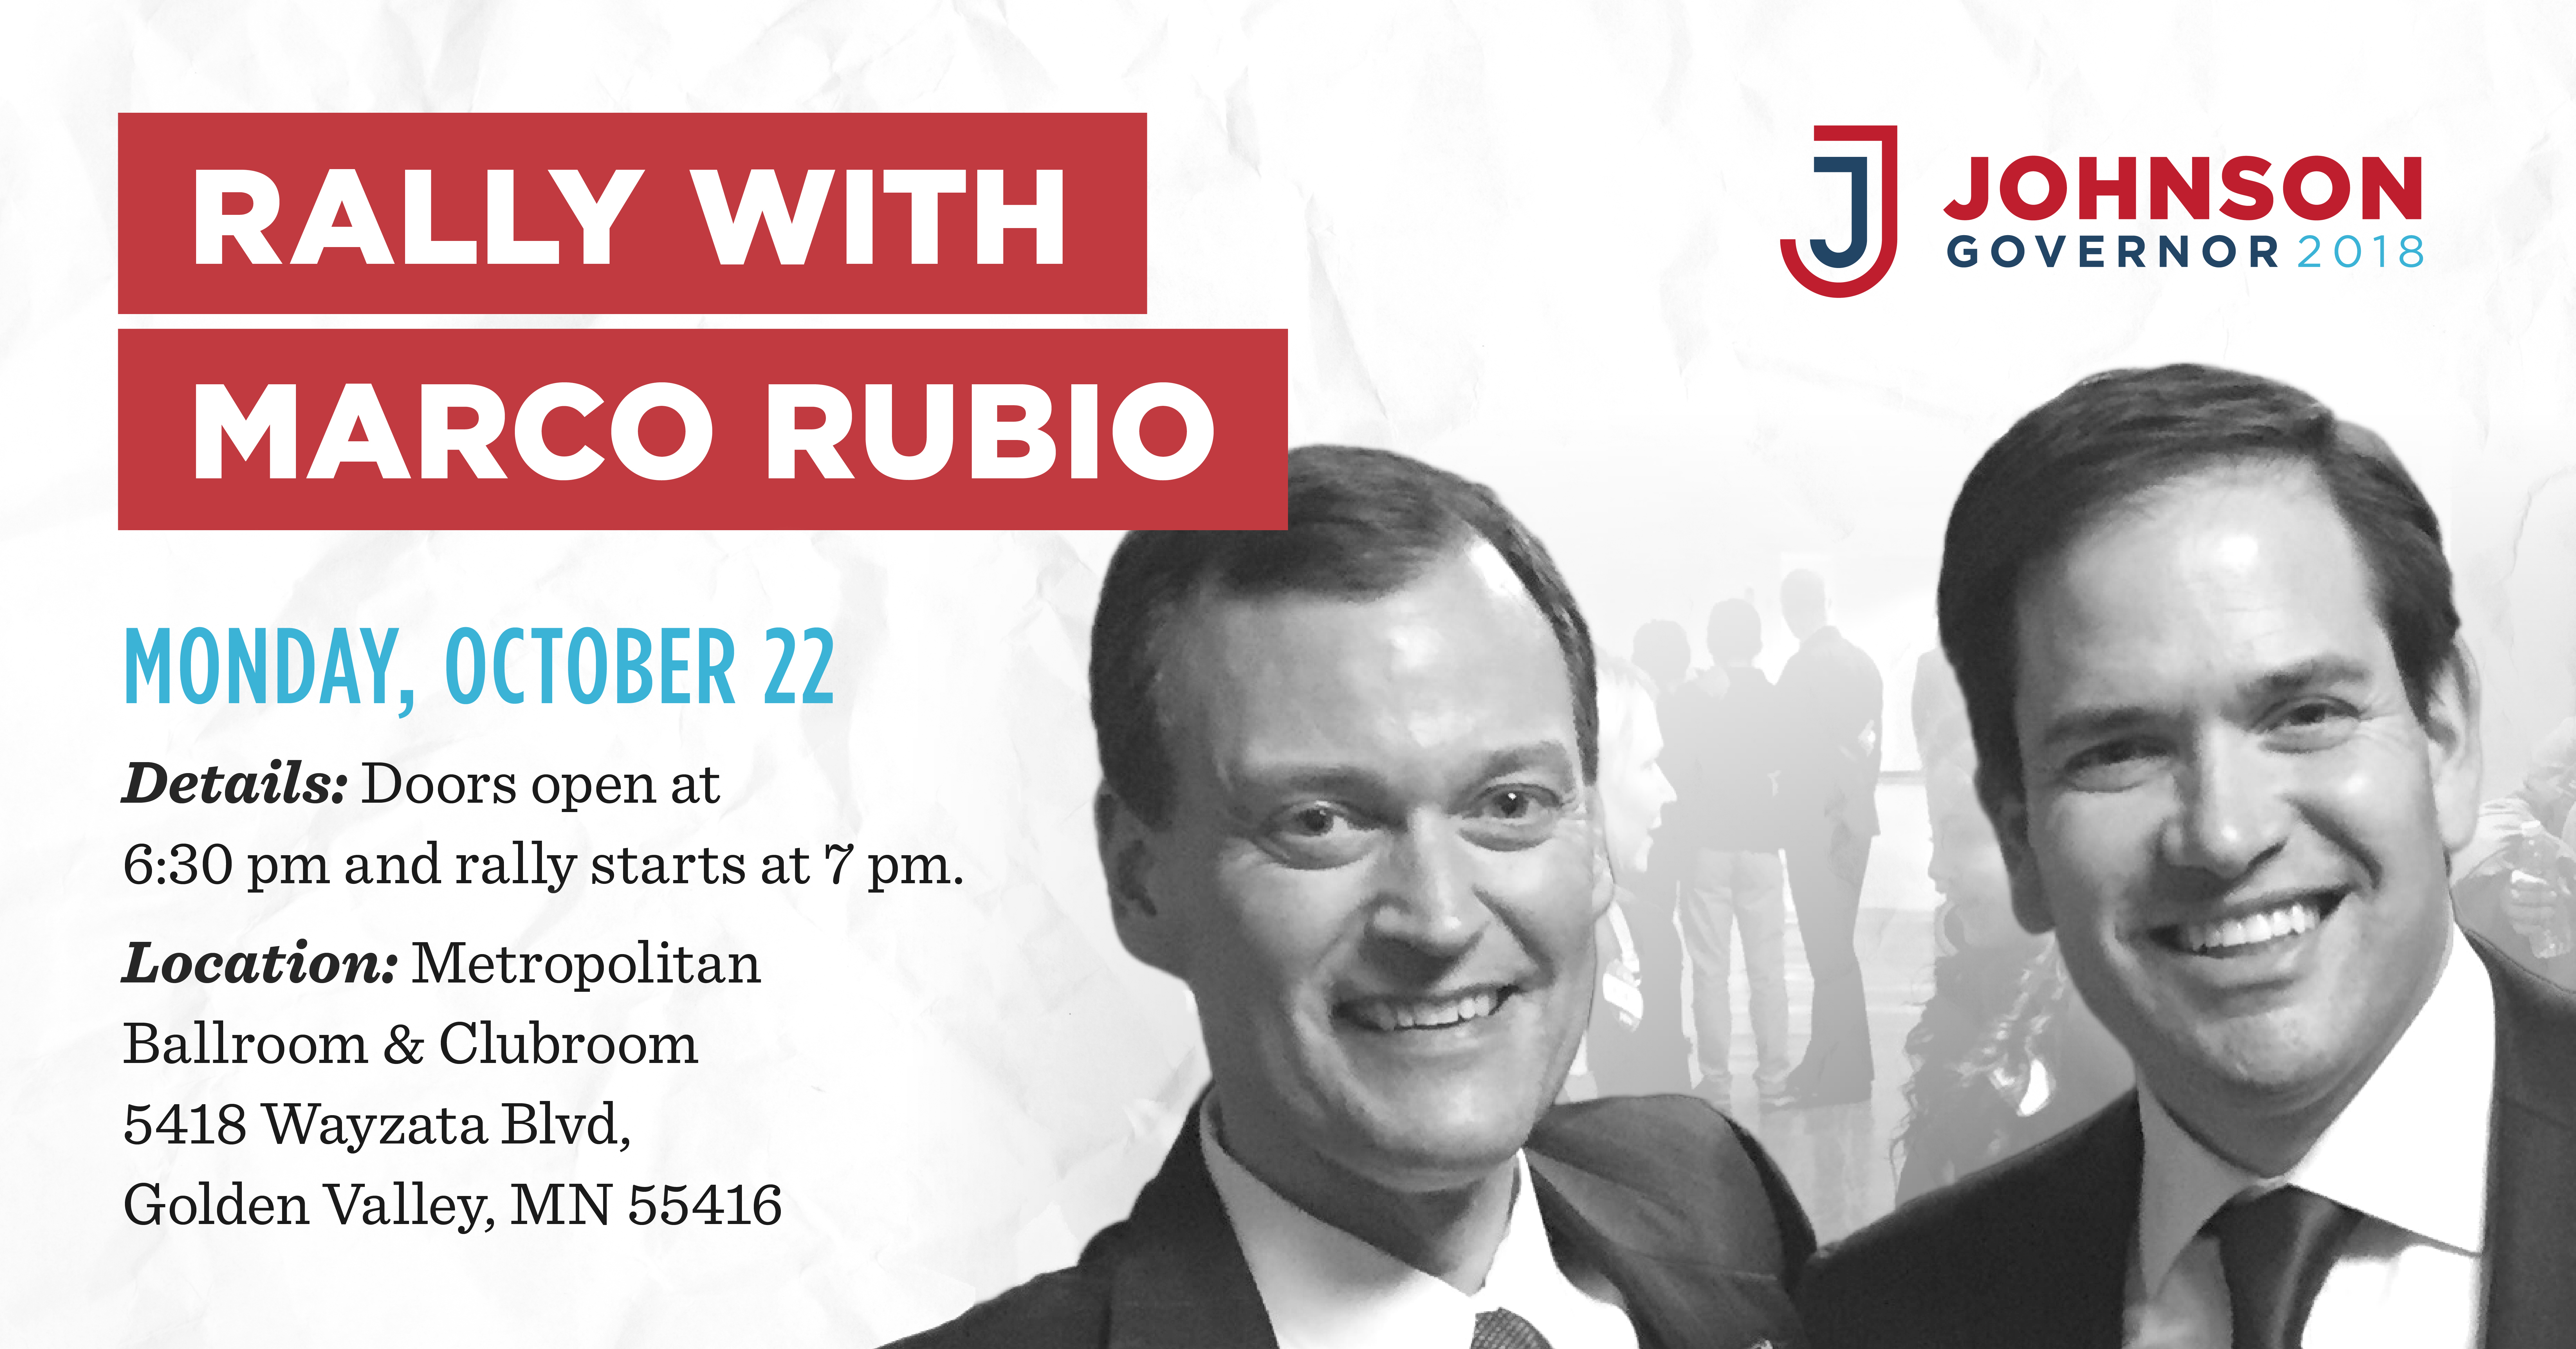 JJ_and_Marco_Rally_Graphic.jpg